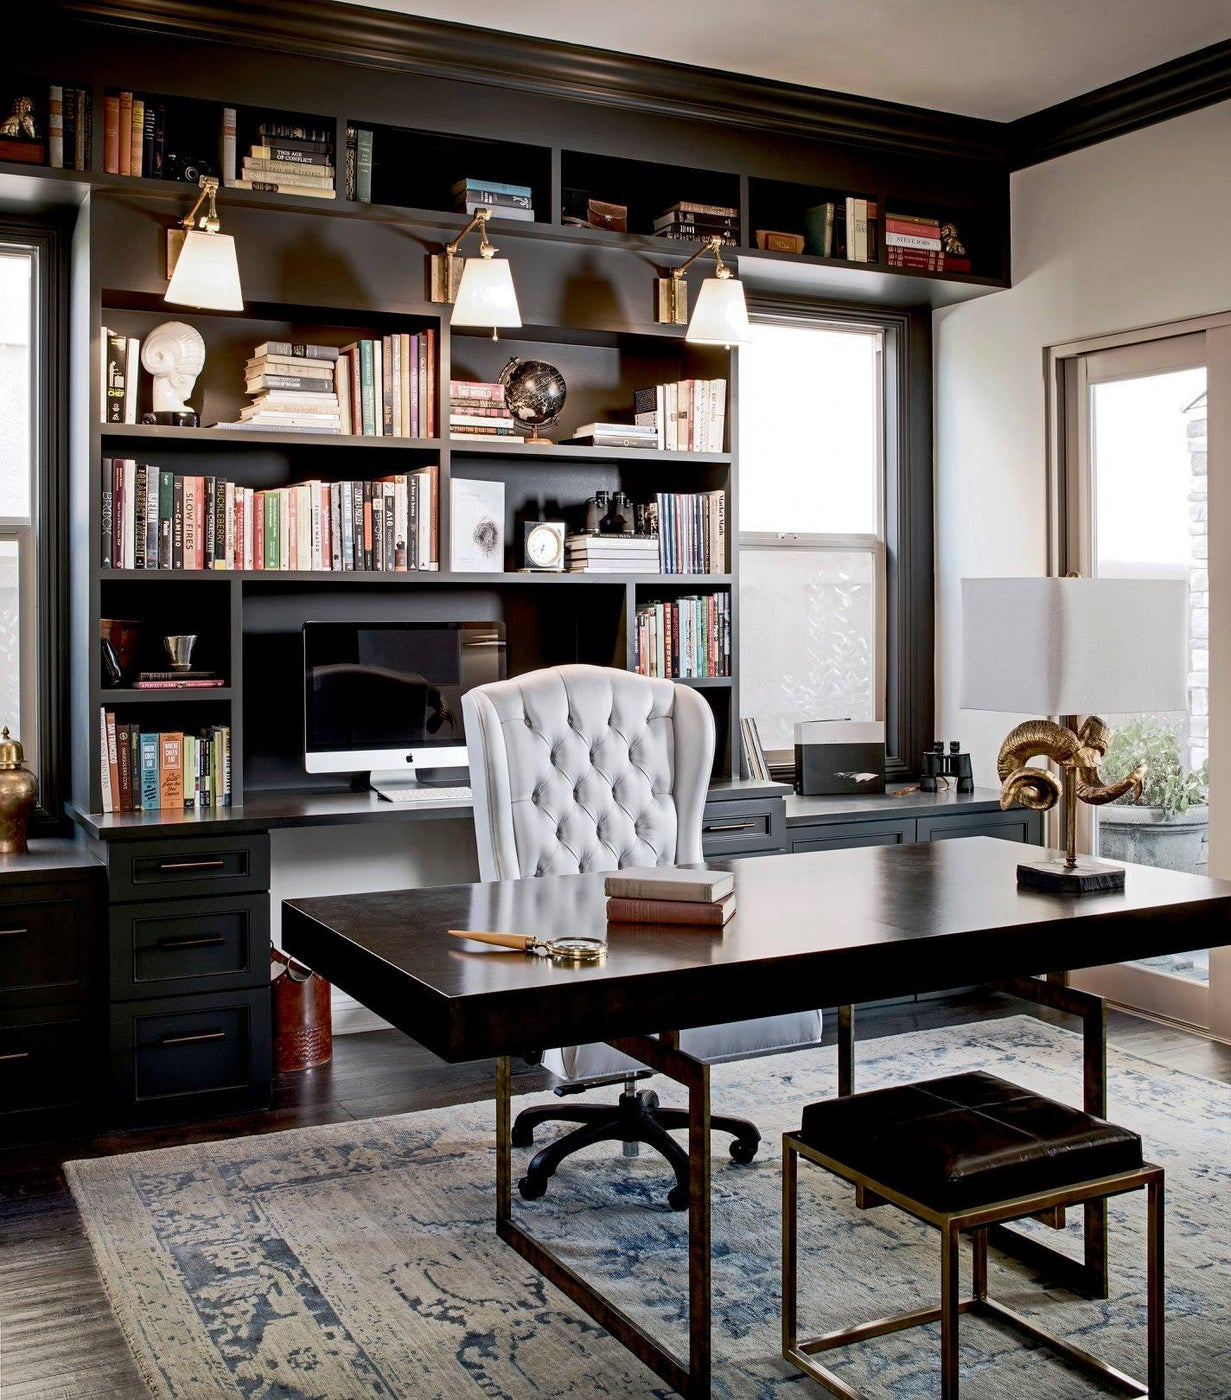 A home office you will never want to leave!